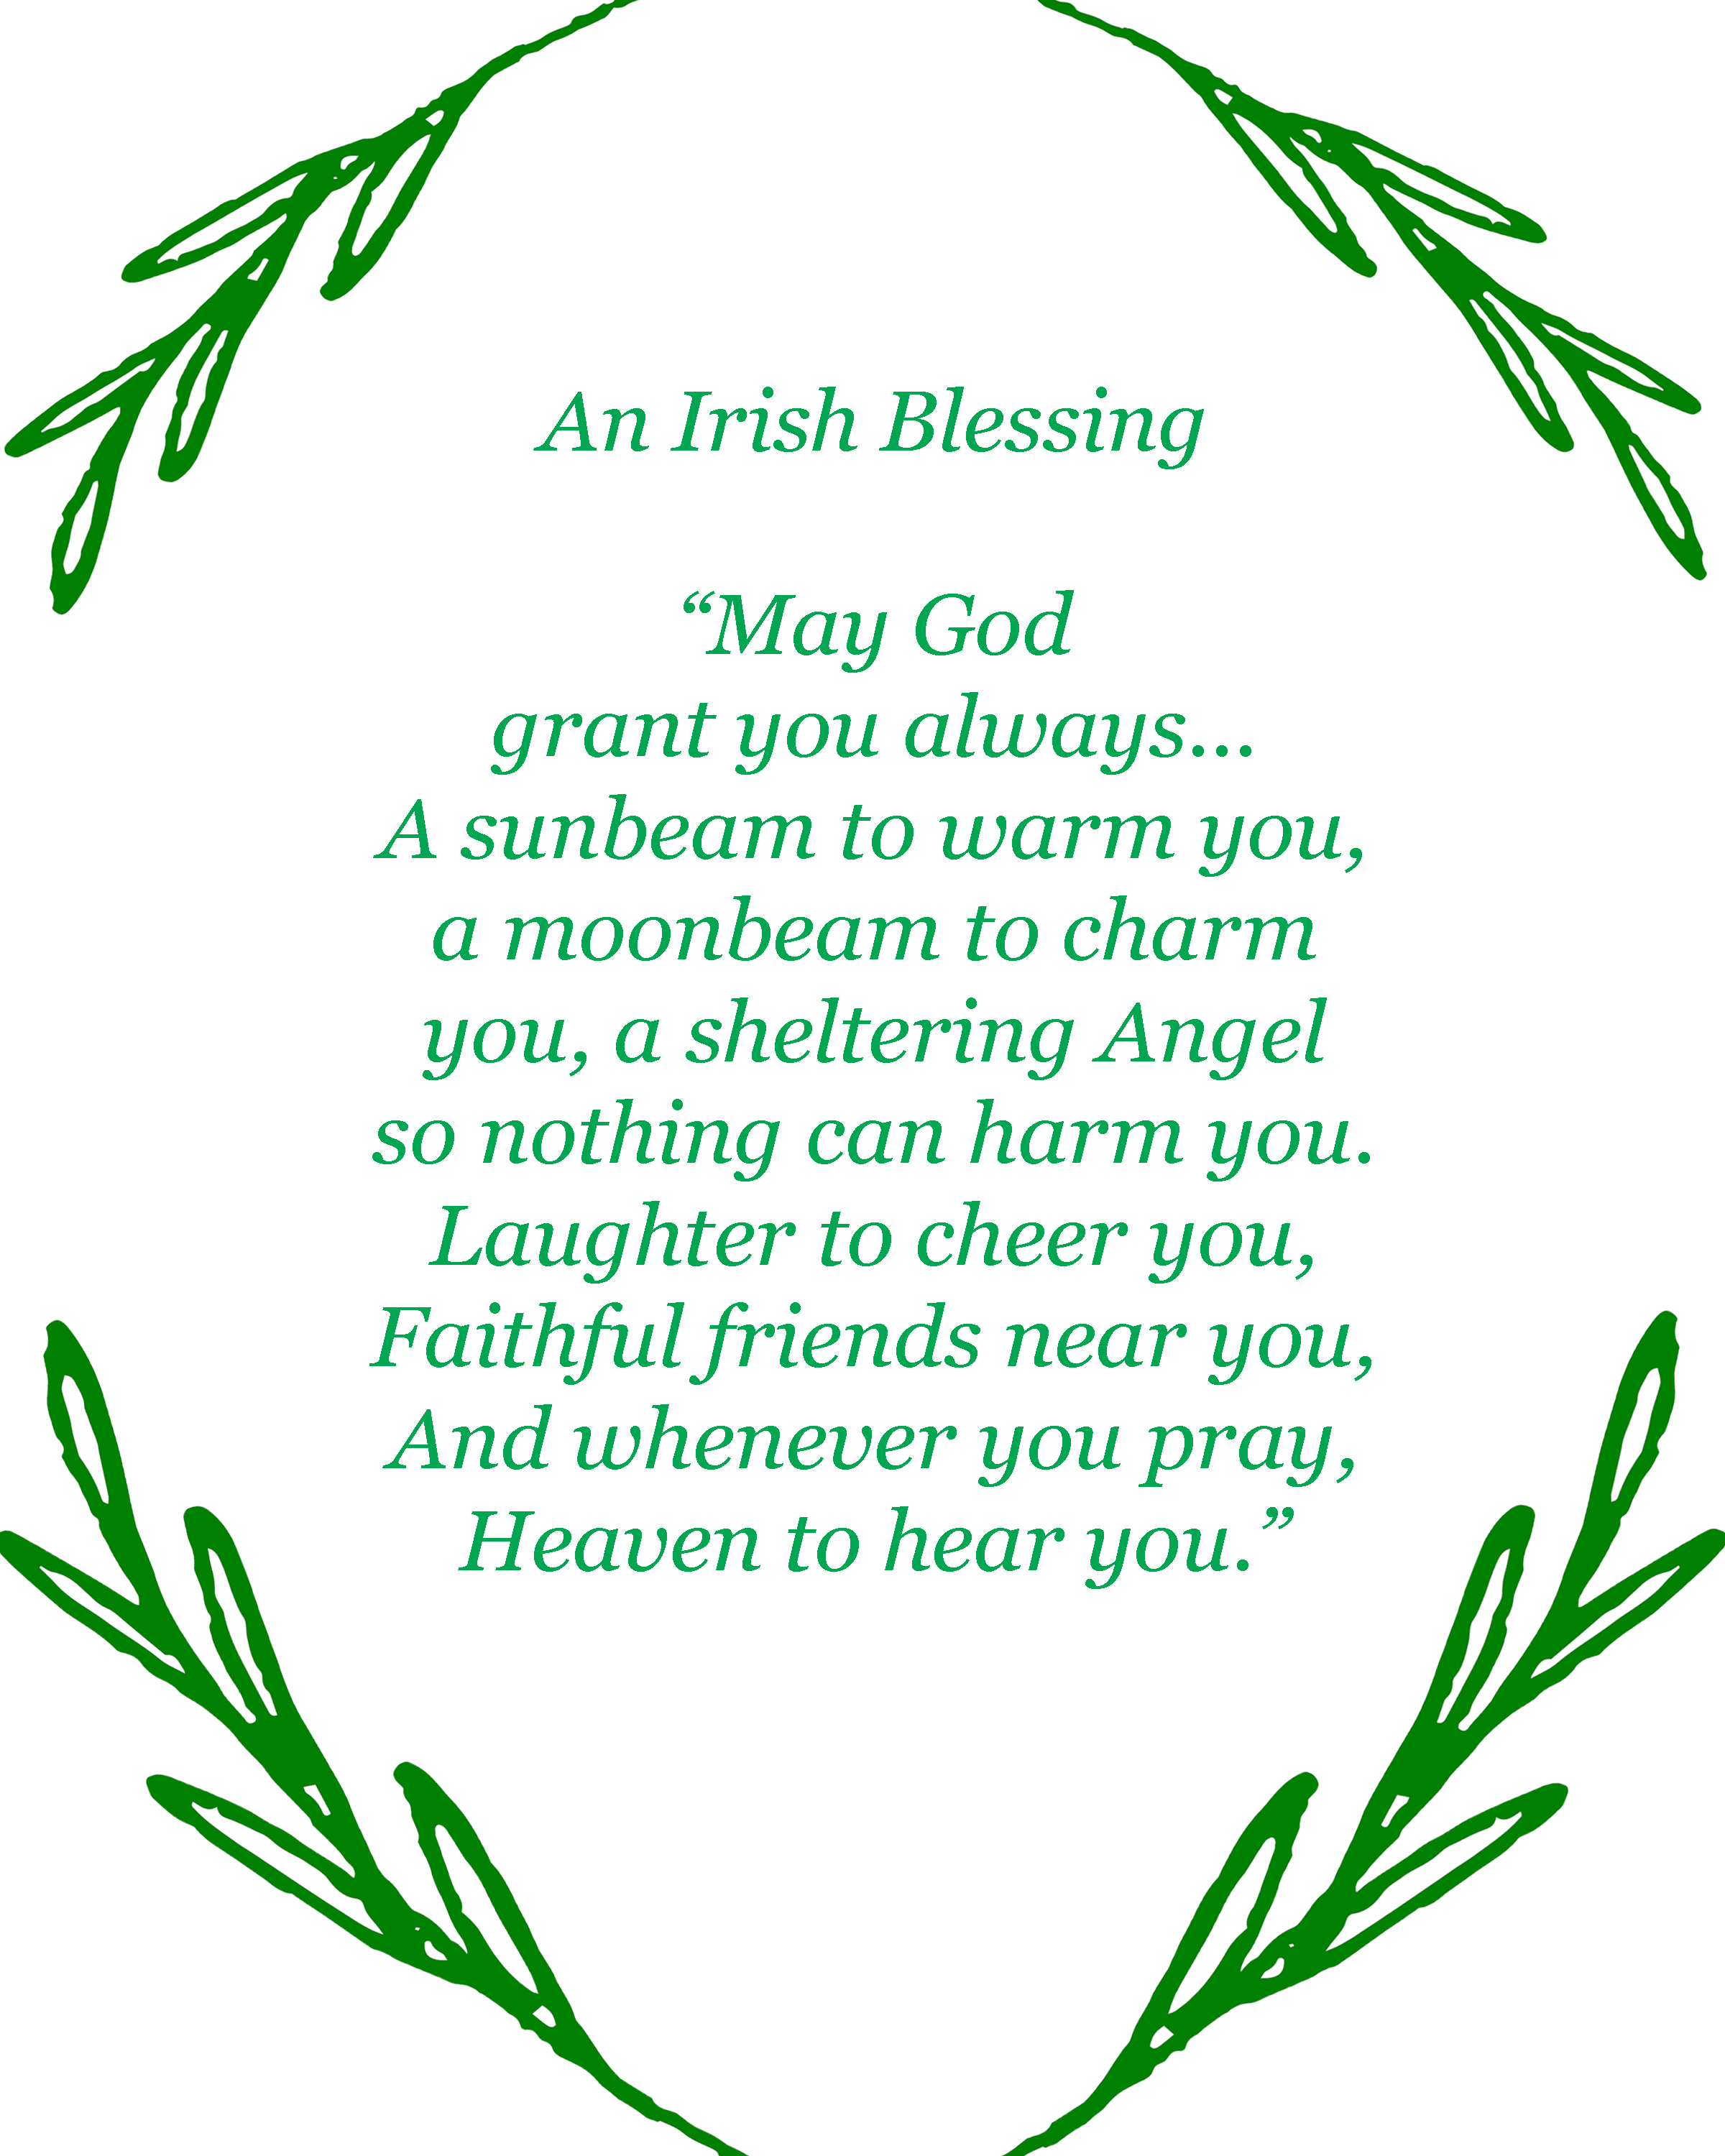 Irish Blessing Printable.